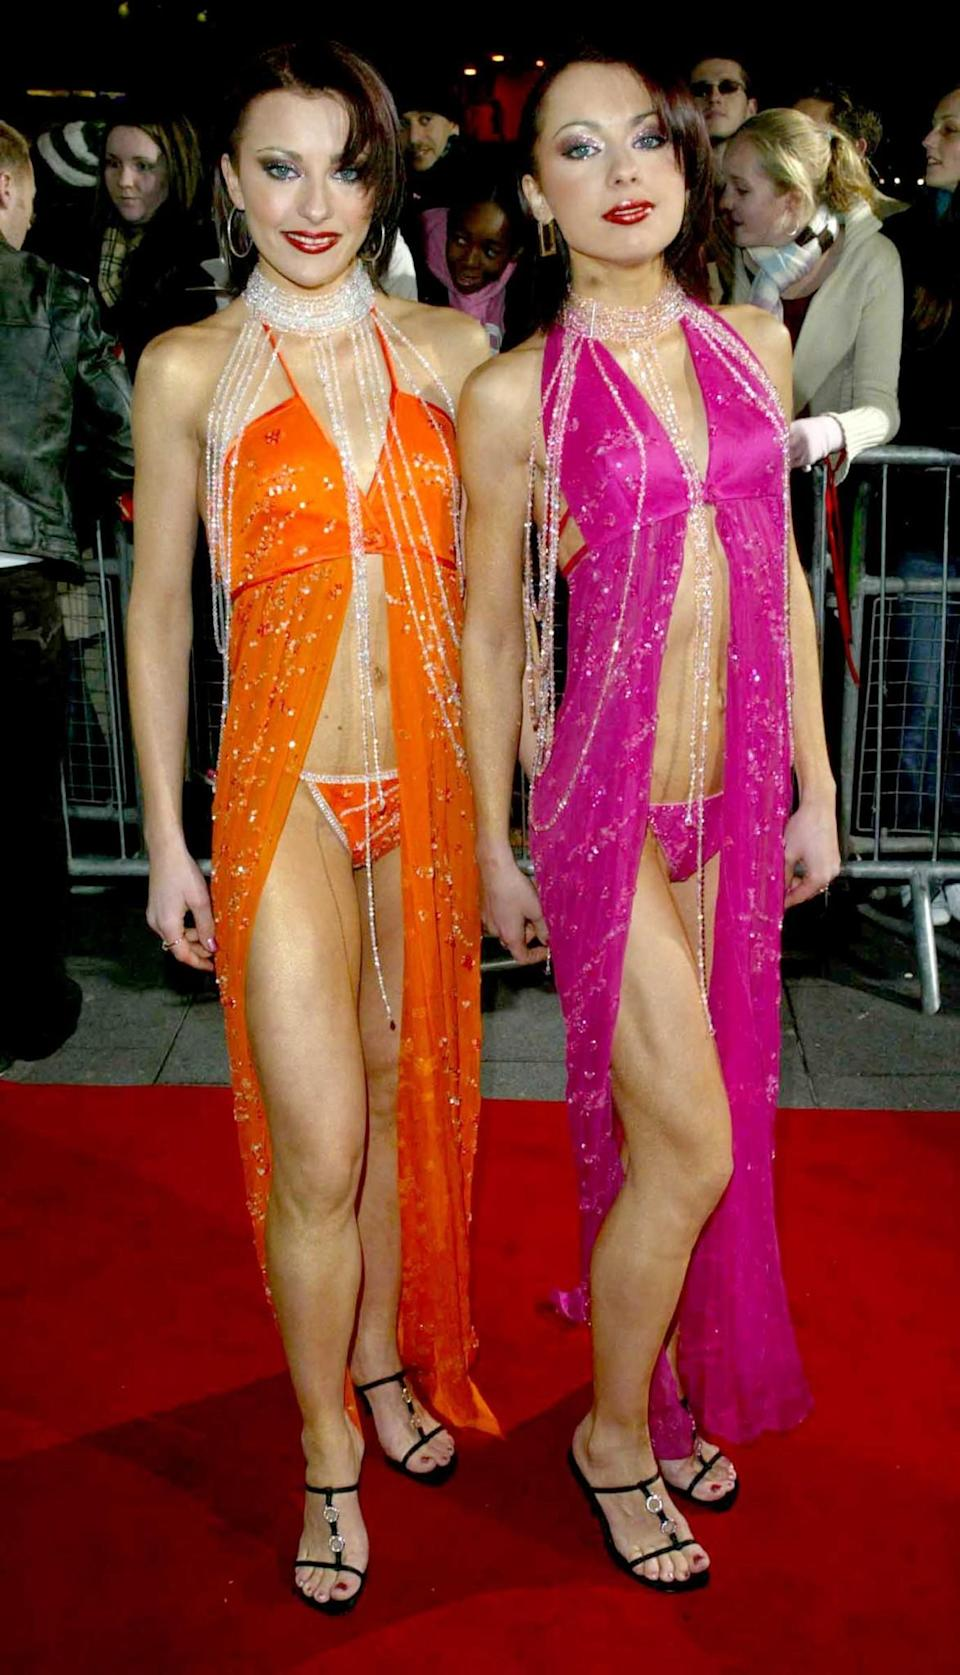 <p>Then: It's been over a decade, but The Cheeky Girls song is still engrained in our memory. The singing twin sisters shot to fame after auditioning for Popstars: The Rivals and had numerous top 10 hits throughout the early 2000's. [Photo: Getty] </p>